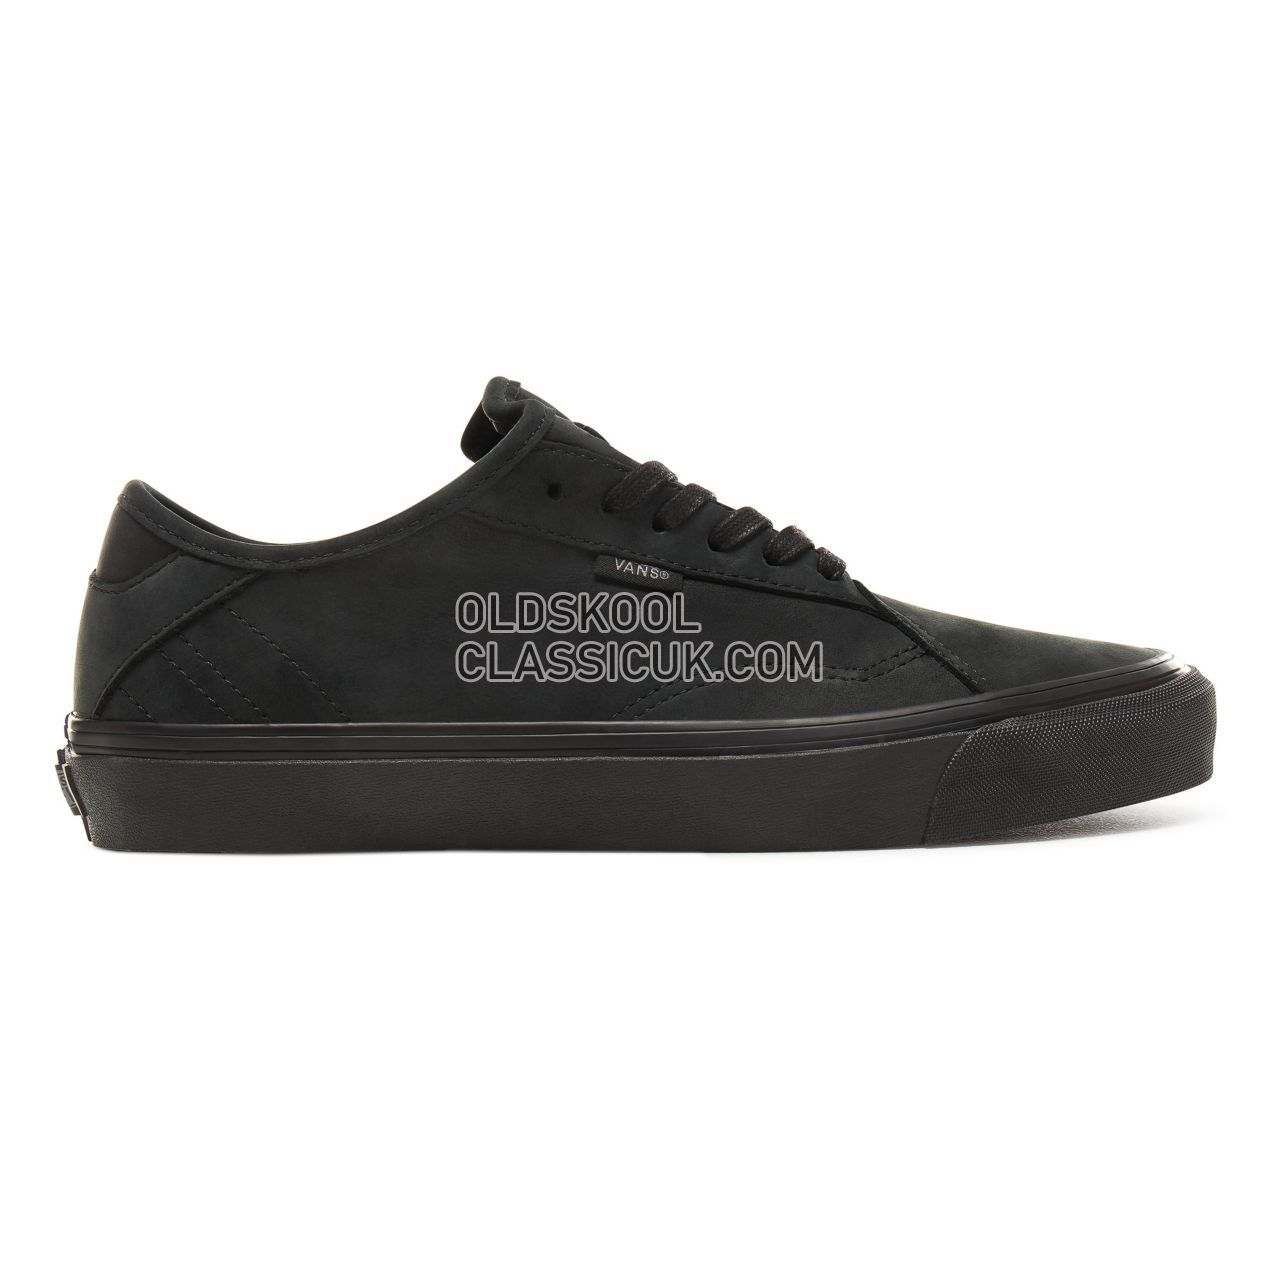 Vans Blackout Diamo Ni Sneakers Mens (Blackout) Black/Black VN0A3TKDUMA Shoes